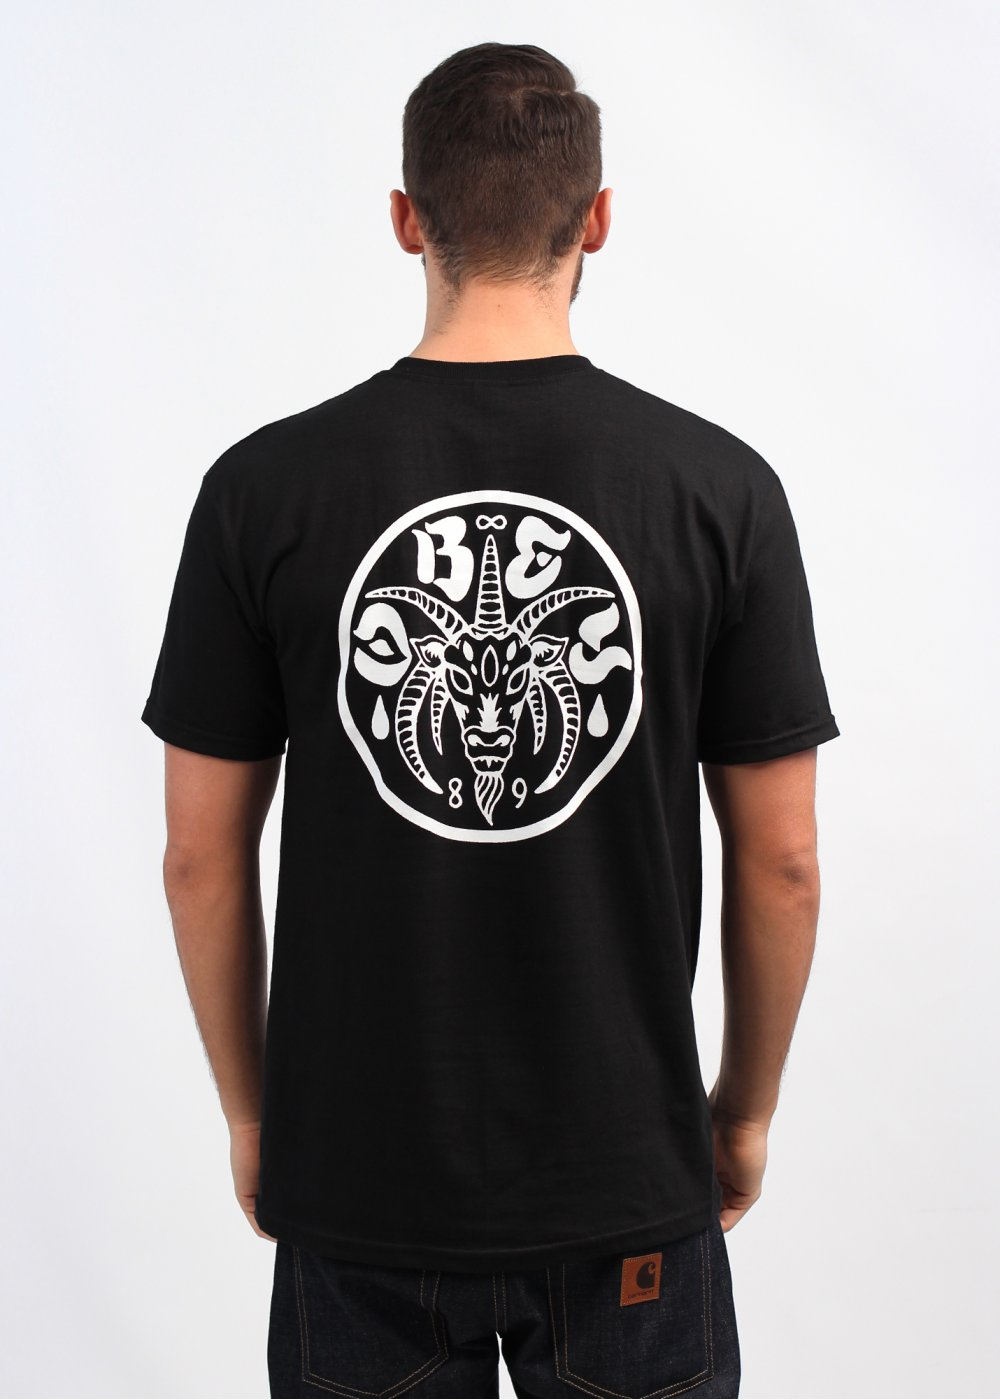 Obey the eternal t shirt black for Black obey t shirt